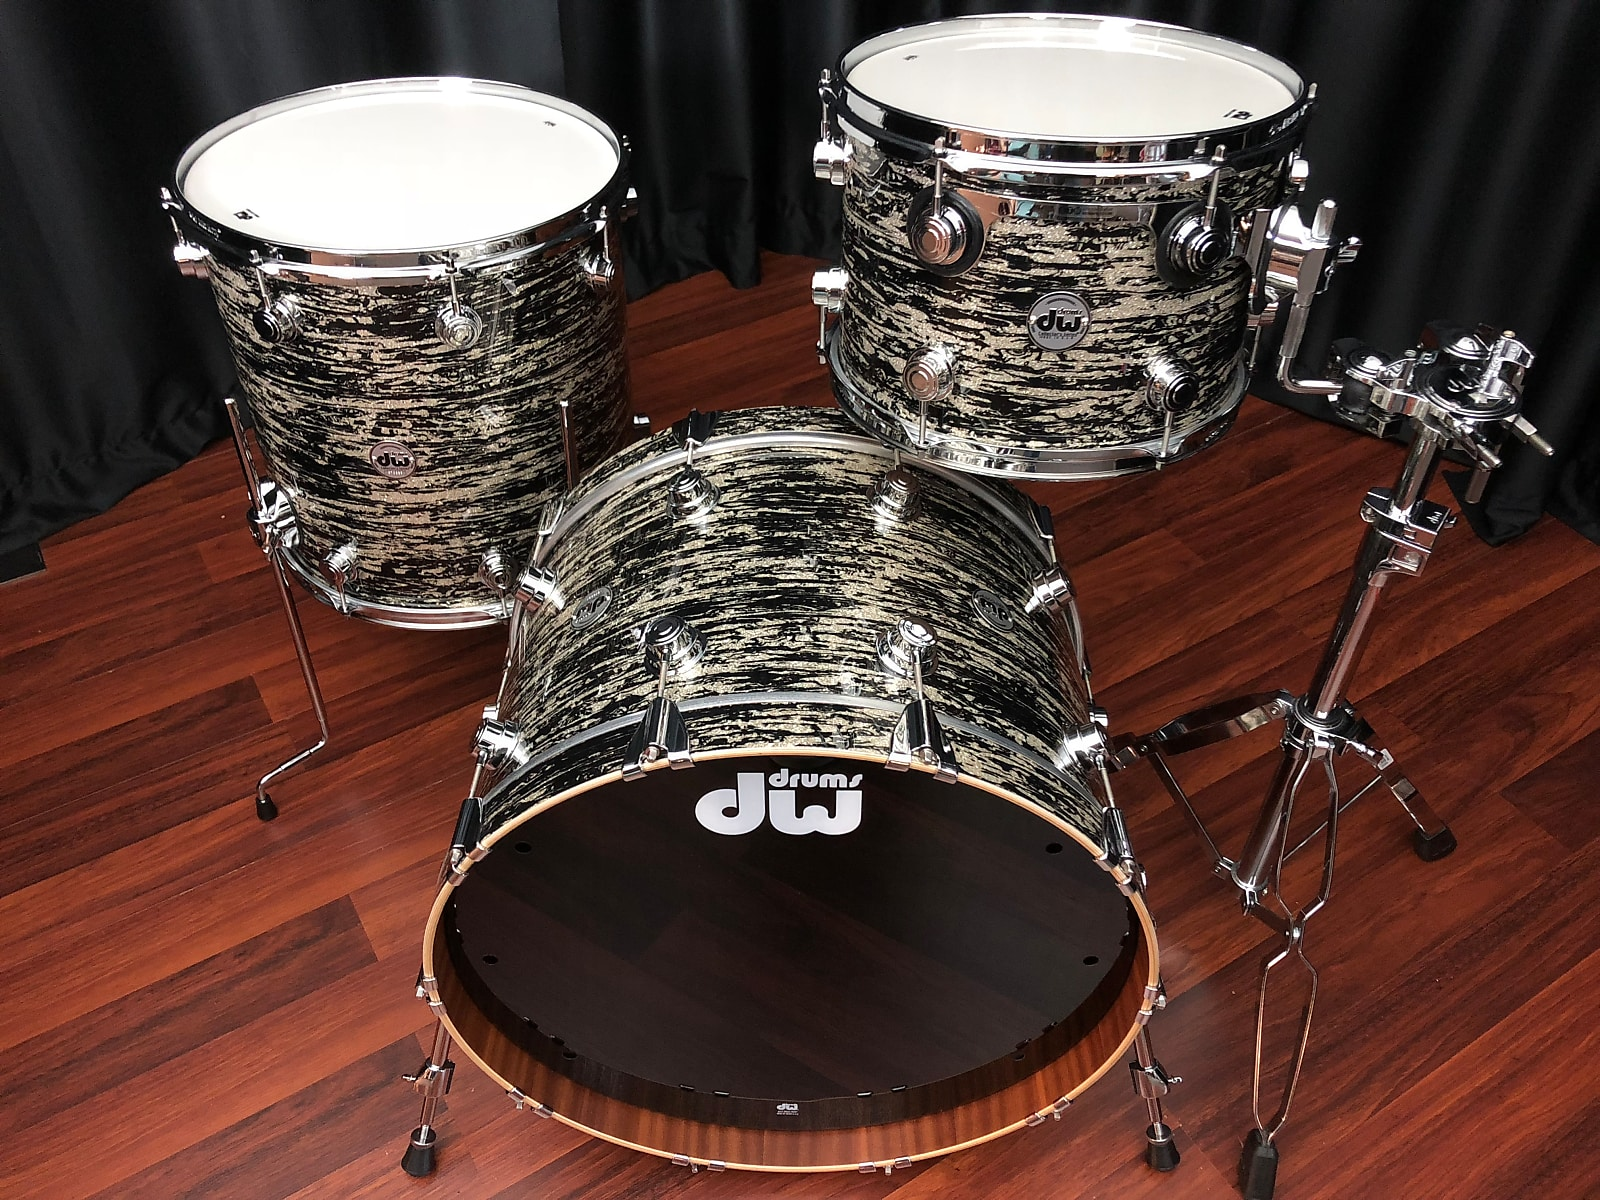 DW Drums Collector's Series kit Maple Mahogany Black Oyster Glass 14x22, 9x13, 16x16 set